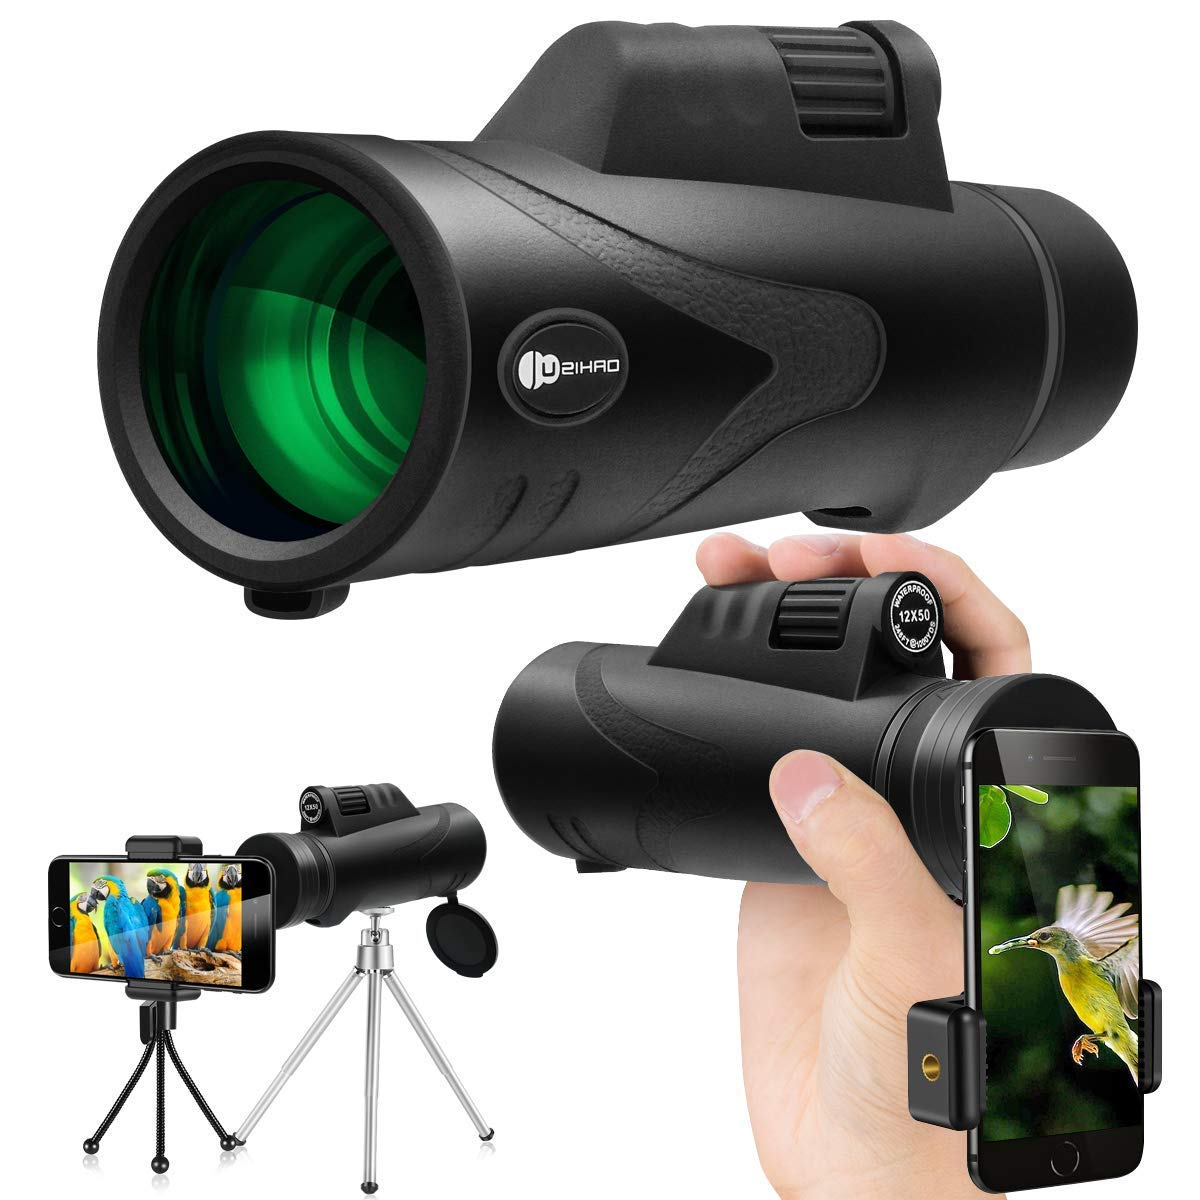 ★お求めやすく価格改定★ [JUZIHAO] Hunting [JUZIHAO Monocular Telescope, JUZIHAO 12X50 HD Low OneSize Night B07HQ1JDJZ Vision Waterproof High Power Spotting Scopes with Cell Phone Photography Adapter, Tripod Holder for Bird Watching Hunting Camping Hiking Travelling] (並行輸入品) OneSize B07HQ1JDJZ, 浦河郡:5d4ac90e --- a0267596.xsph.ru